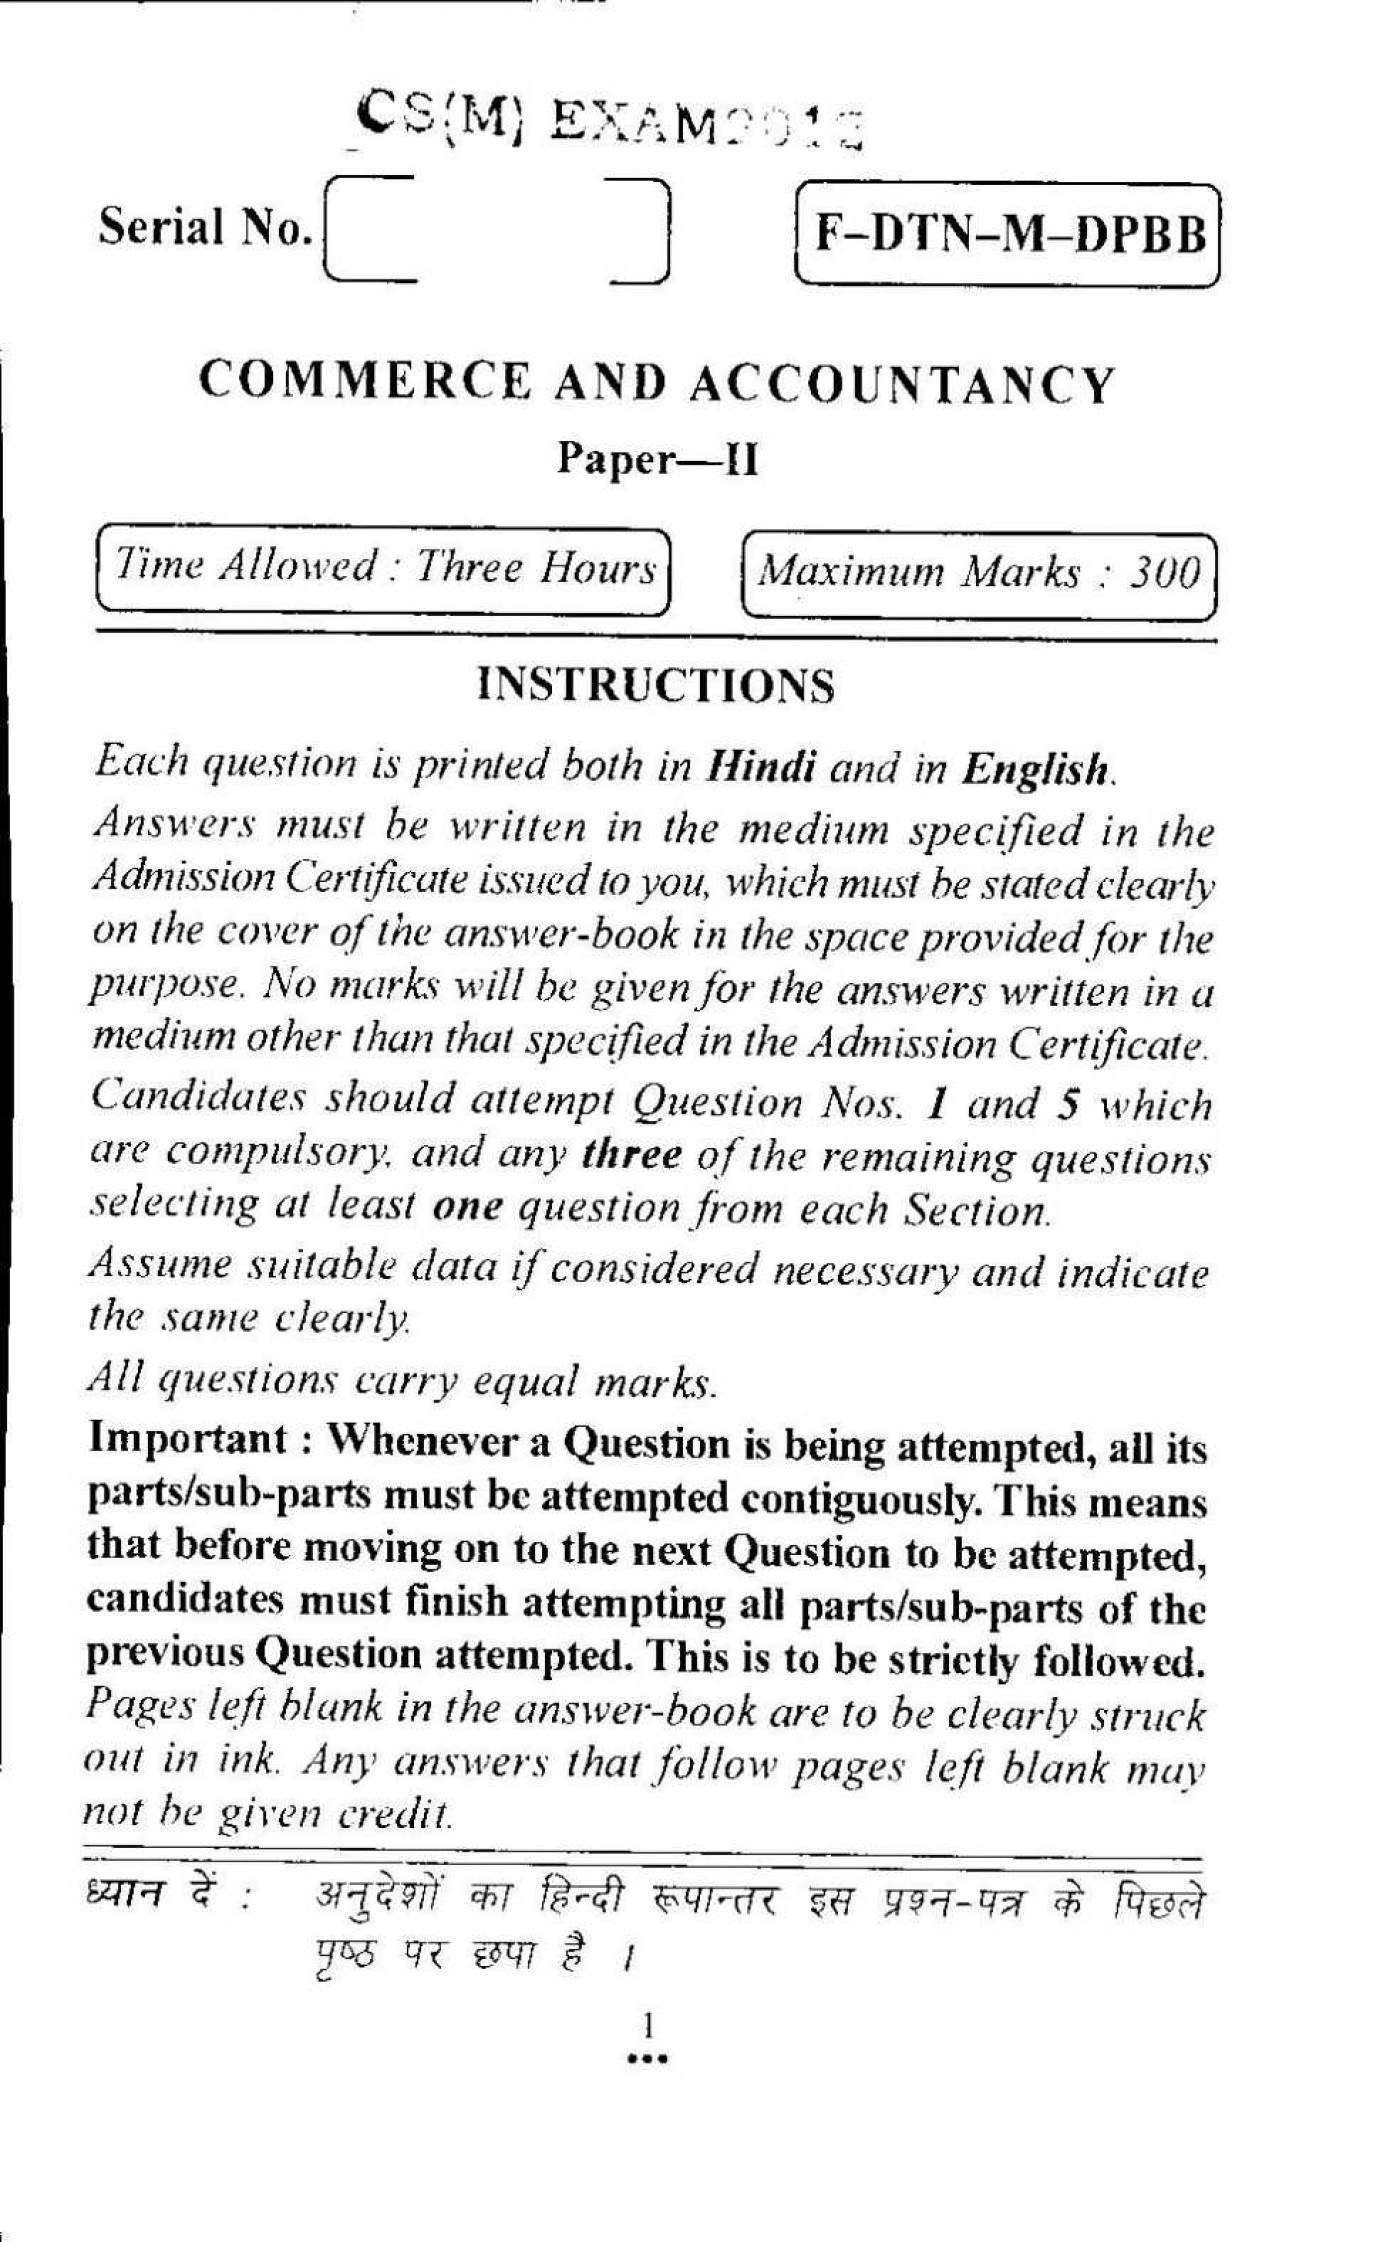 011 Civil Services Examination Commerce And Accountancy Paper Ii Previous Years Que Essay Example Marvelous Racism Racial Issues Topics Hook 1400